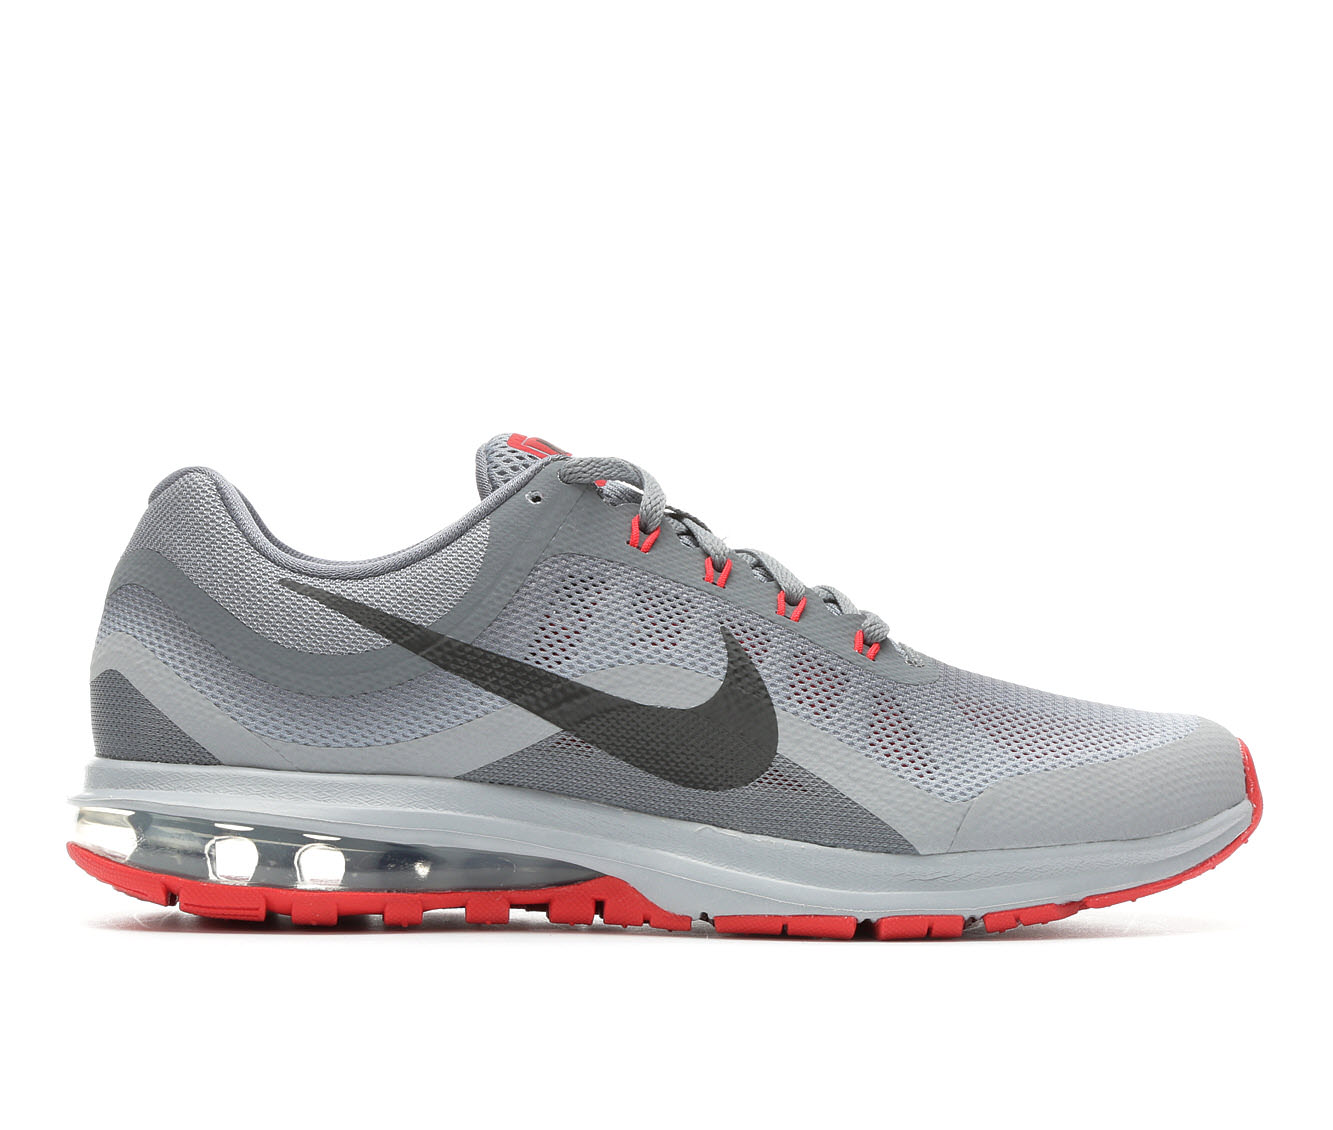 Men's Nike Air Max Dynasty 2 Running Shoes (Grey - Size 10) 1688844